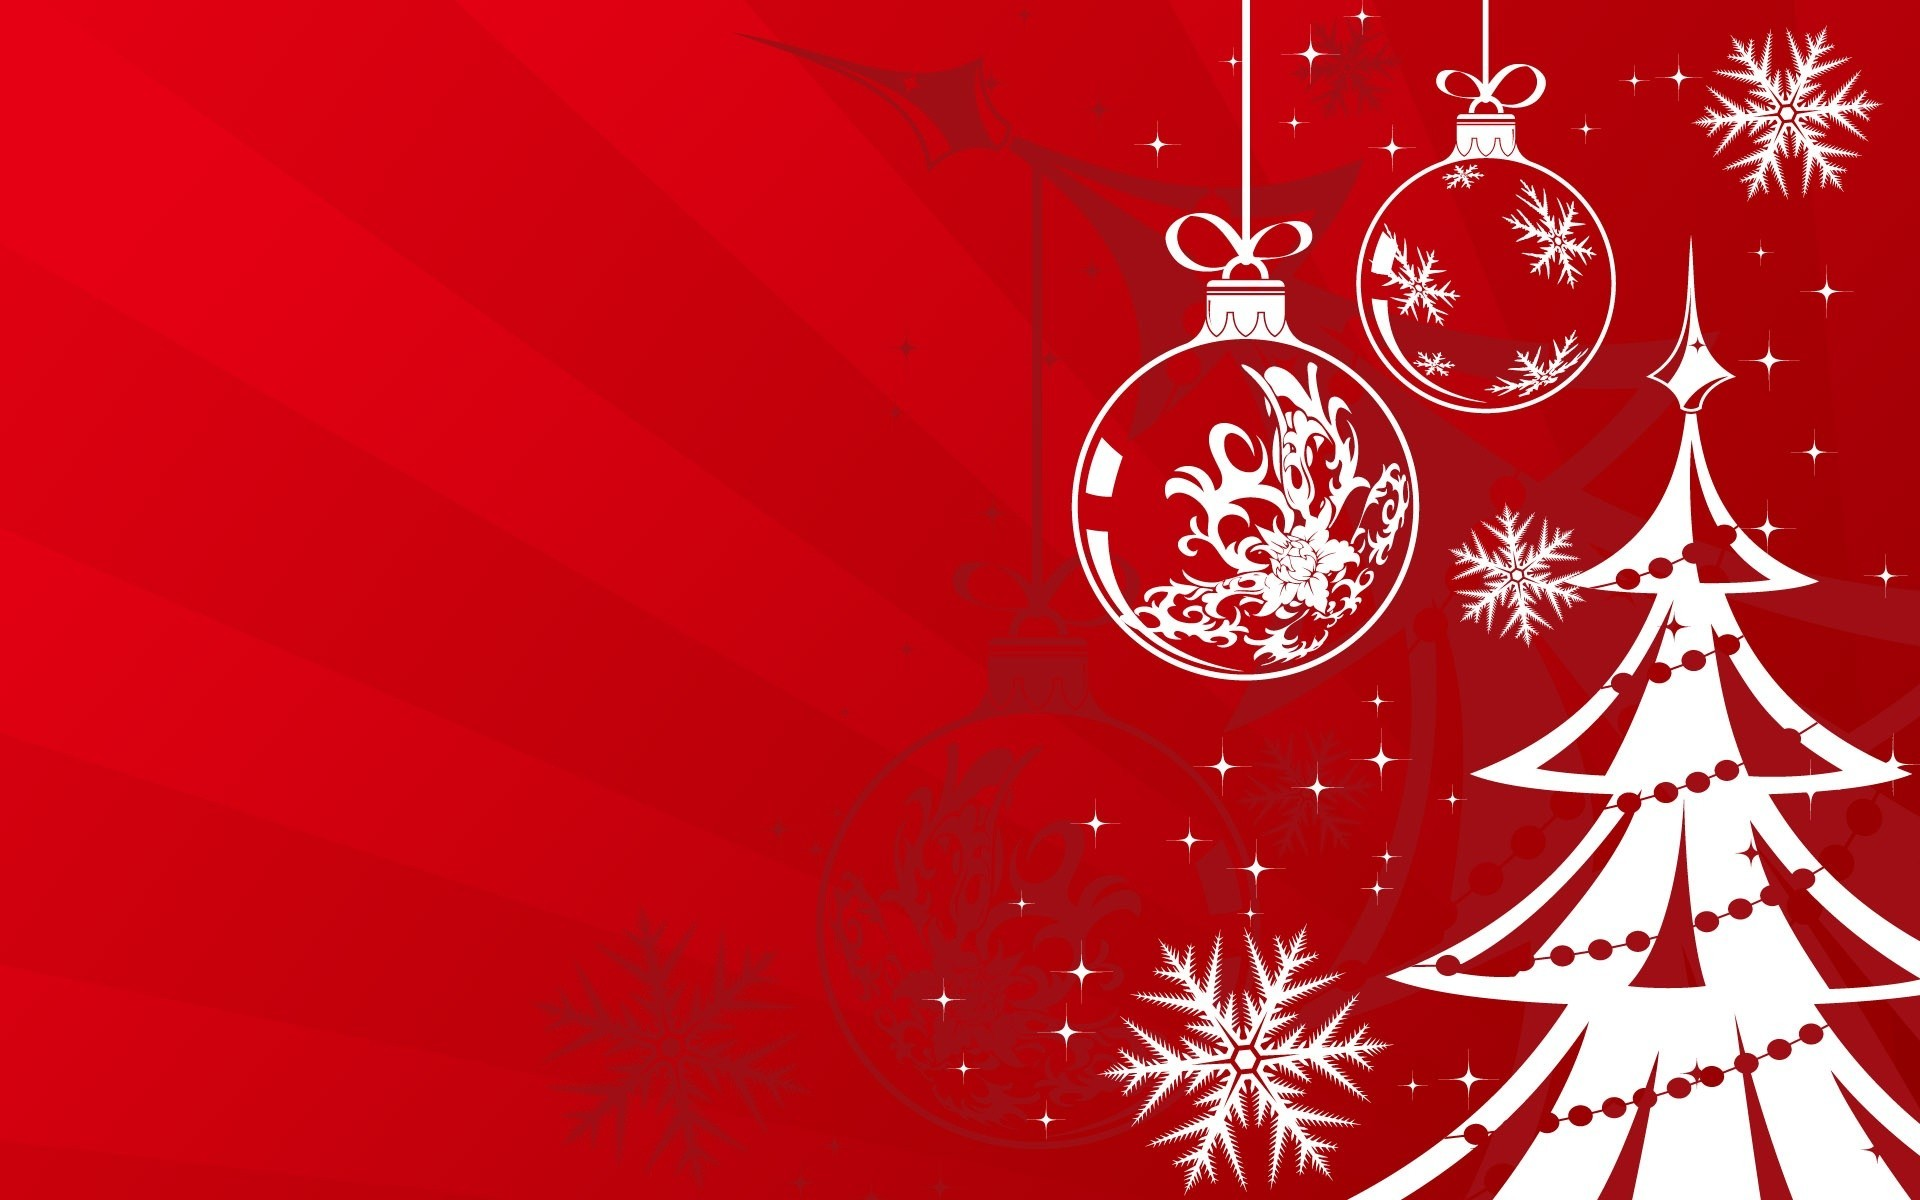 Christmas Background Tumblr.Christmas Backgrounds 62 Pictures